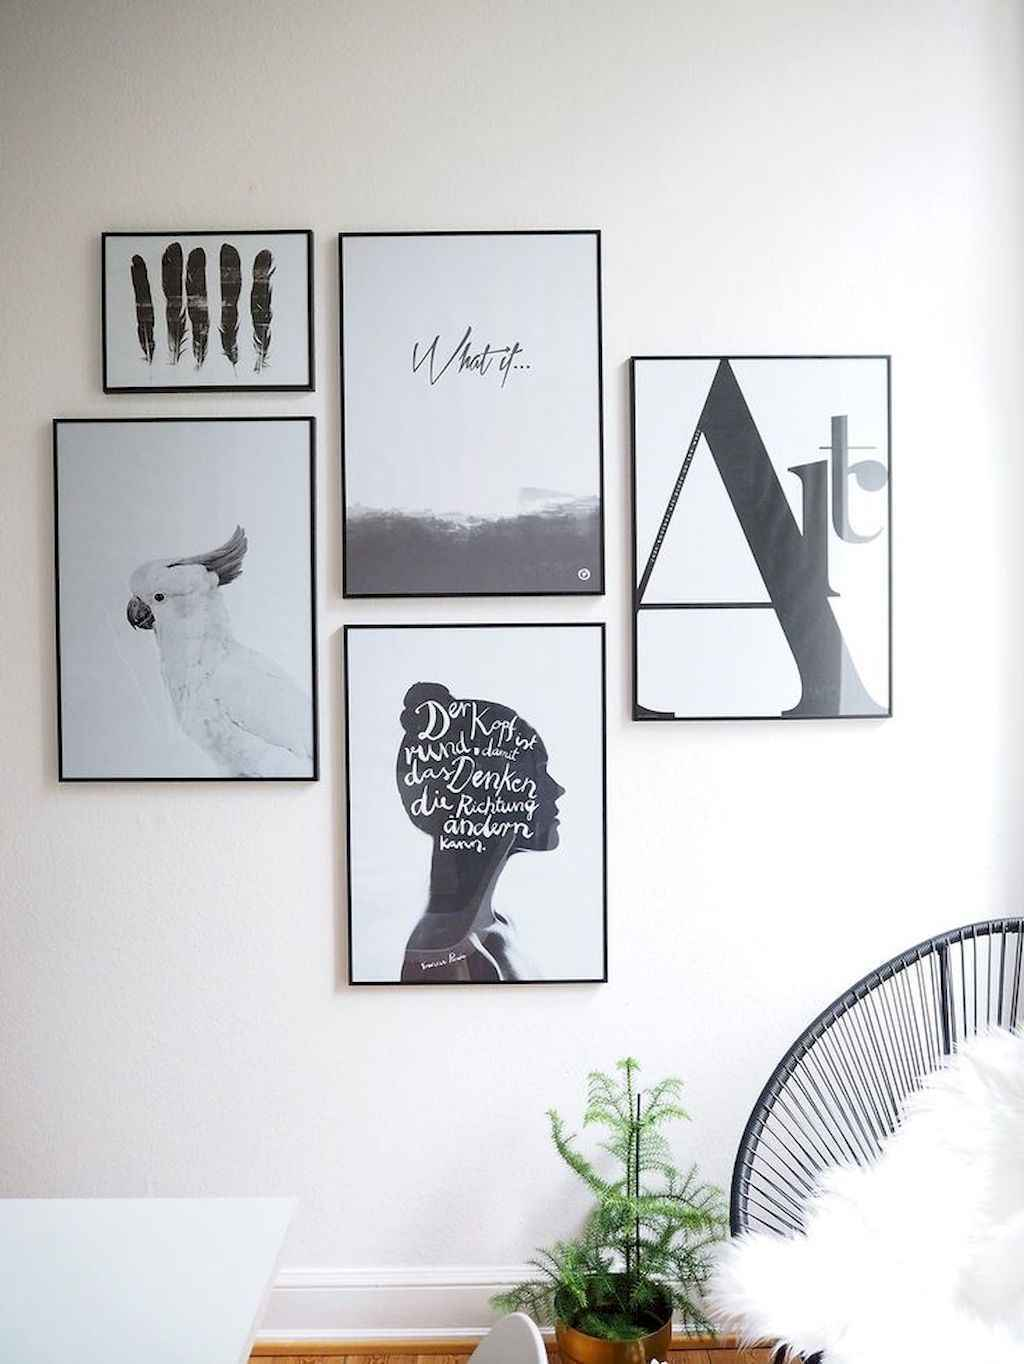 50 Diy First Apartment Ideas On A Budget With Boho Wall Decor (50)